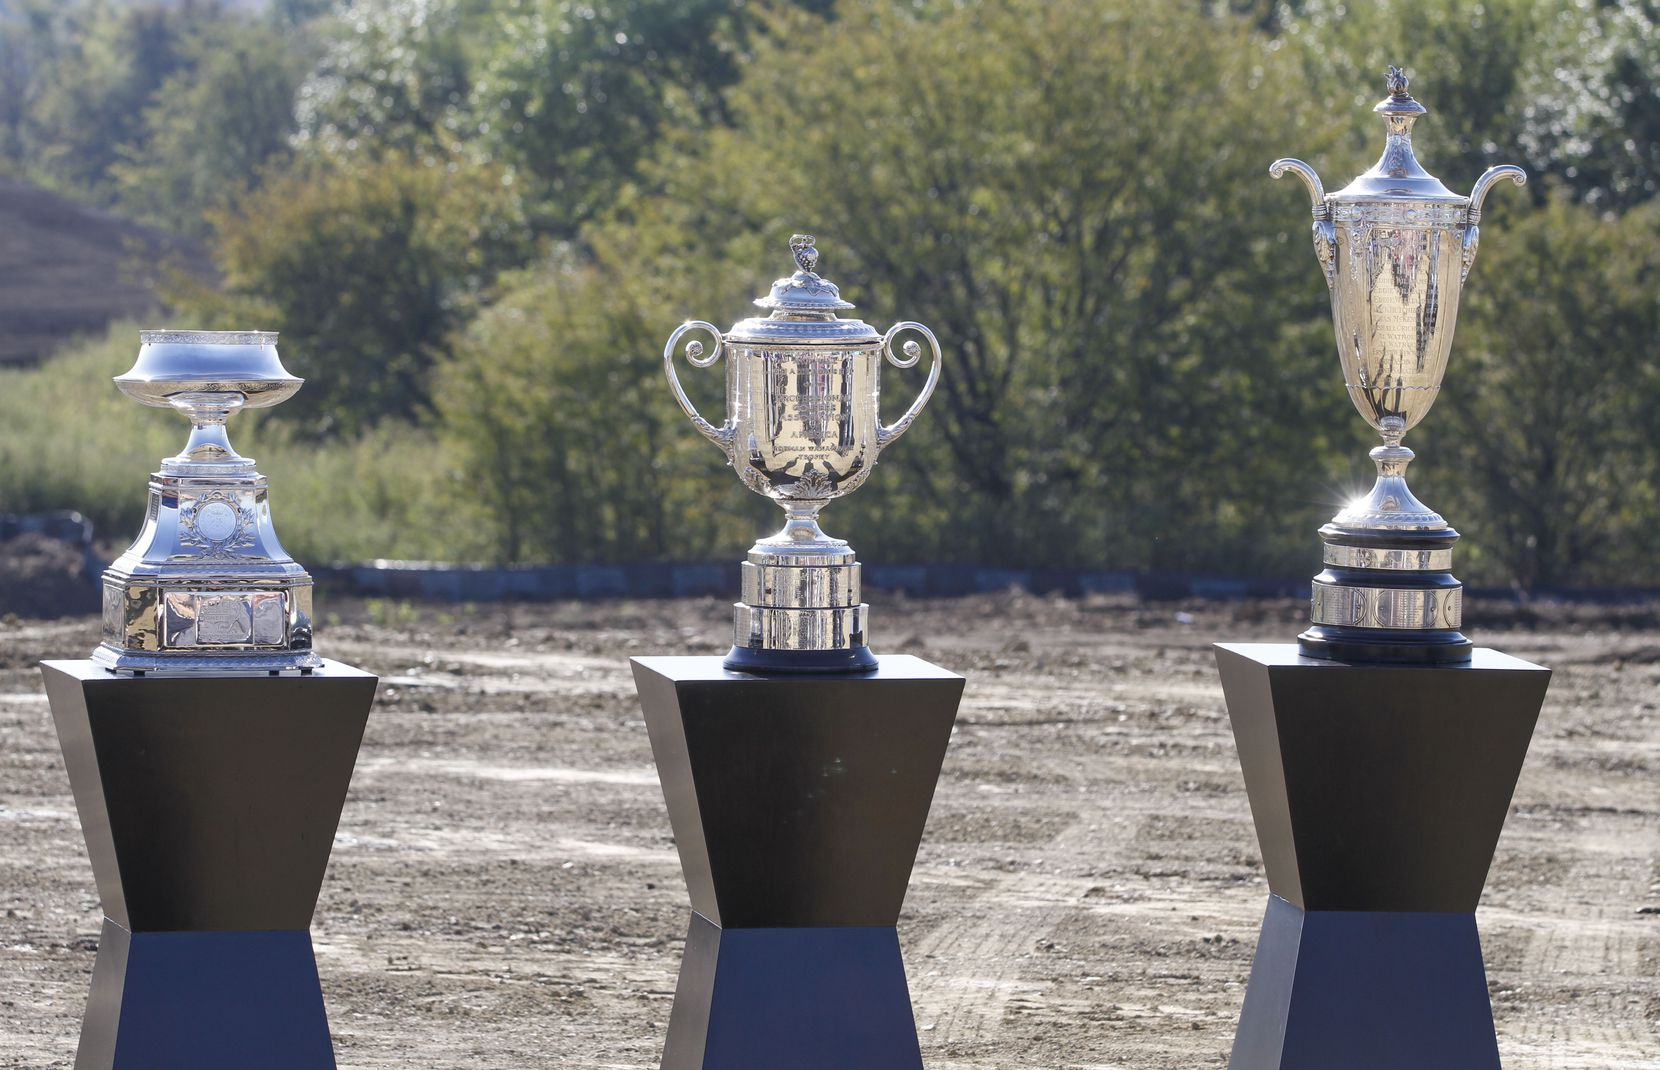 Trophies representing the KPMG Women's PGA Championship, the Rodman Wanamaker PGA Championship and the Alfred S. Borne Senior PGA Championship were displayed at the future site of PGA of America headquarters in Frisco.